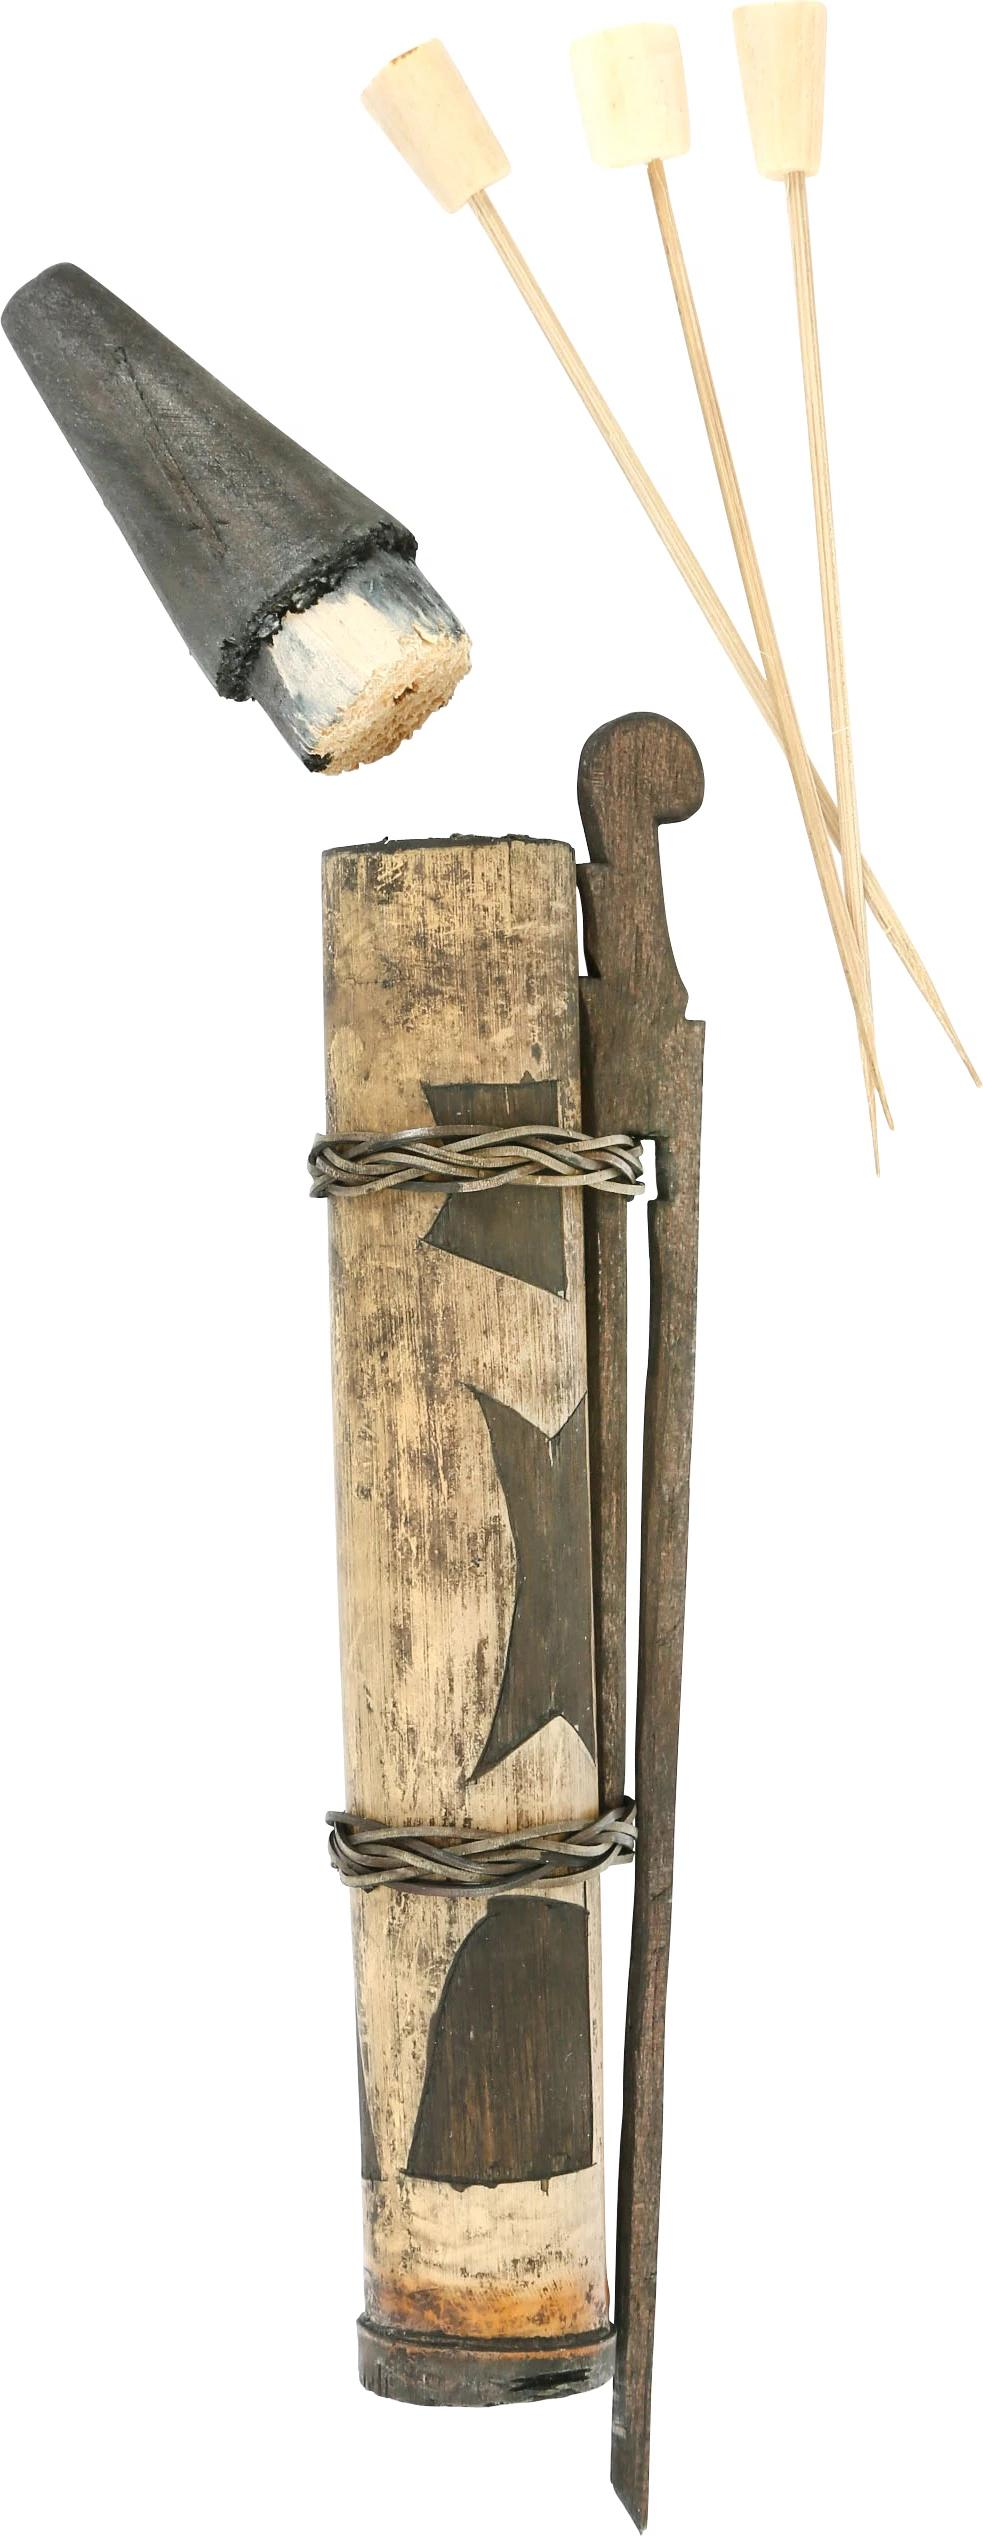 DAYAK HEADHUNTER'S BLOW PIPE DART CONTAINER, TOLAR 19th Century.